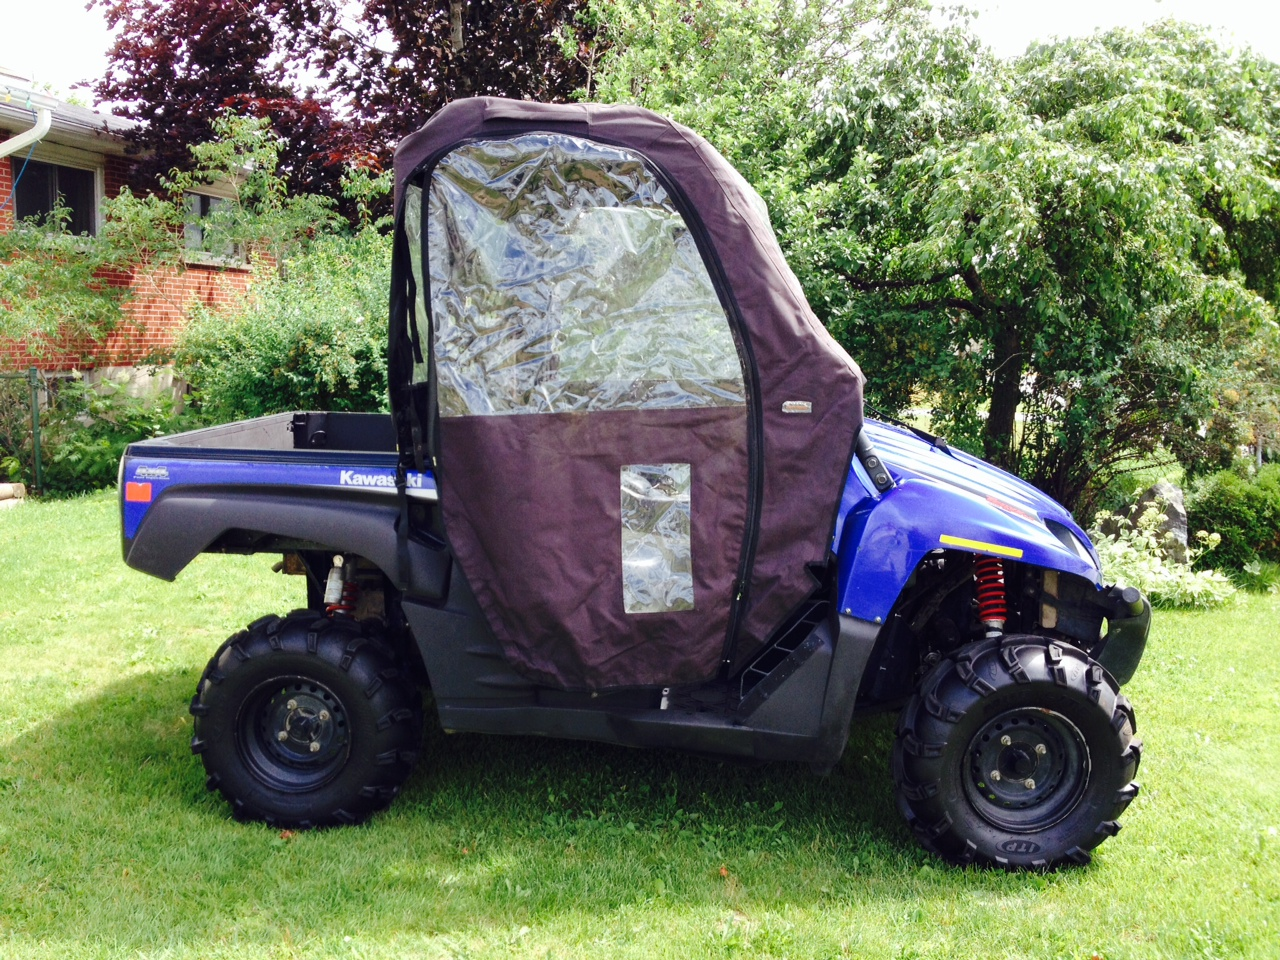 Kawasaki Teryx LE 750 Side By Side 4X4 - Quad Pictures 2014